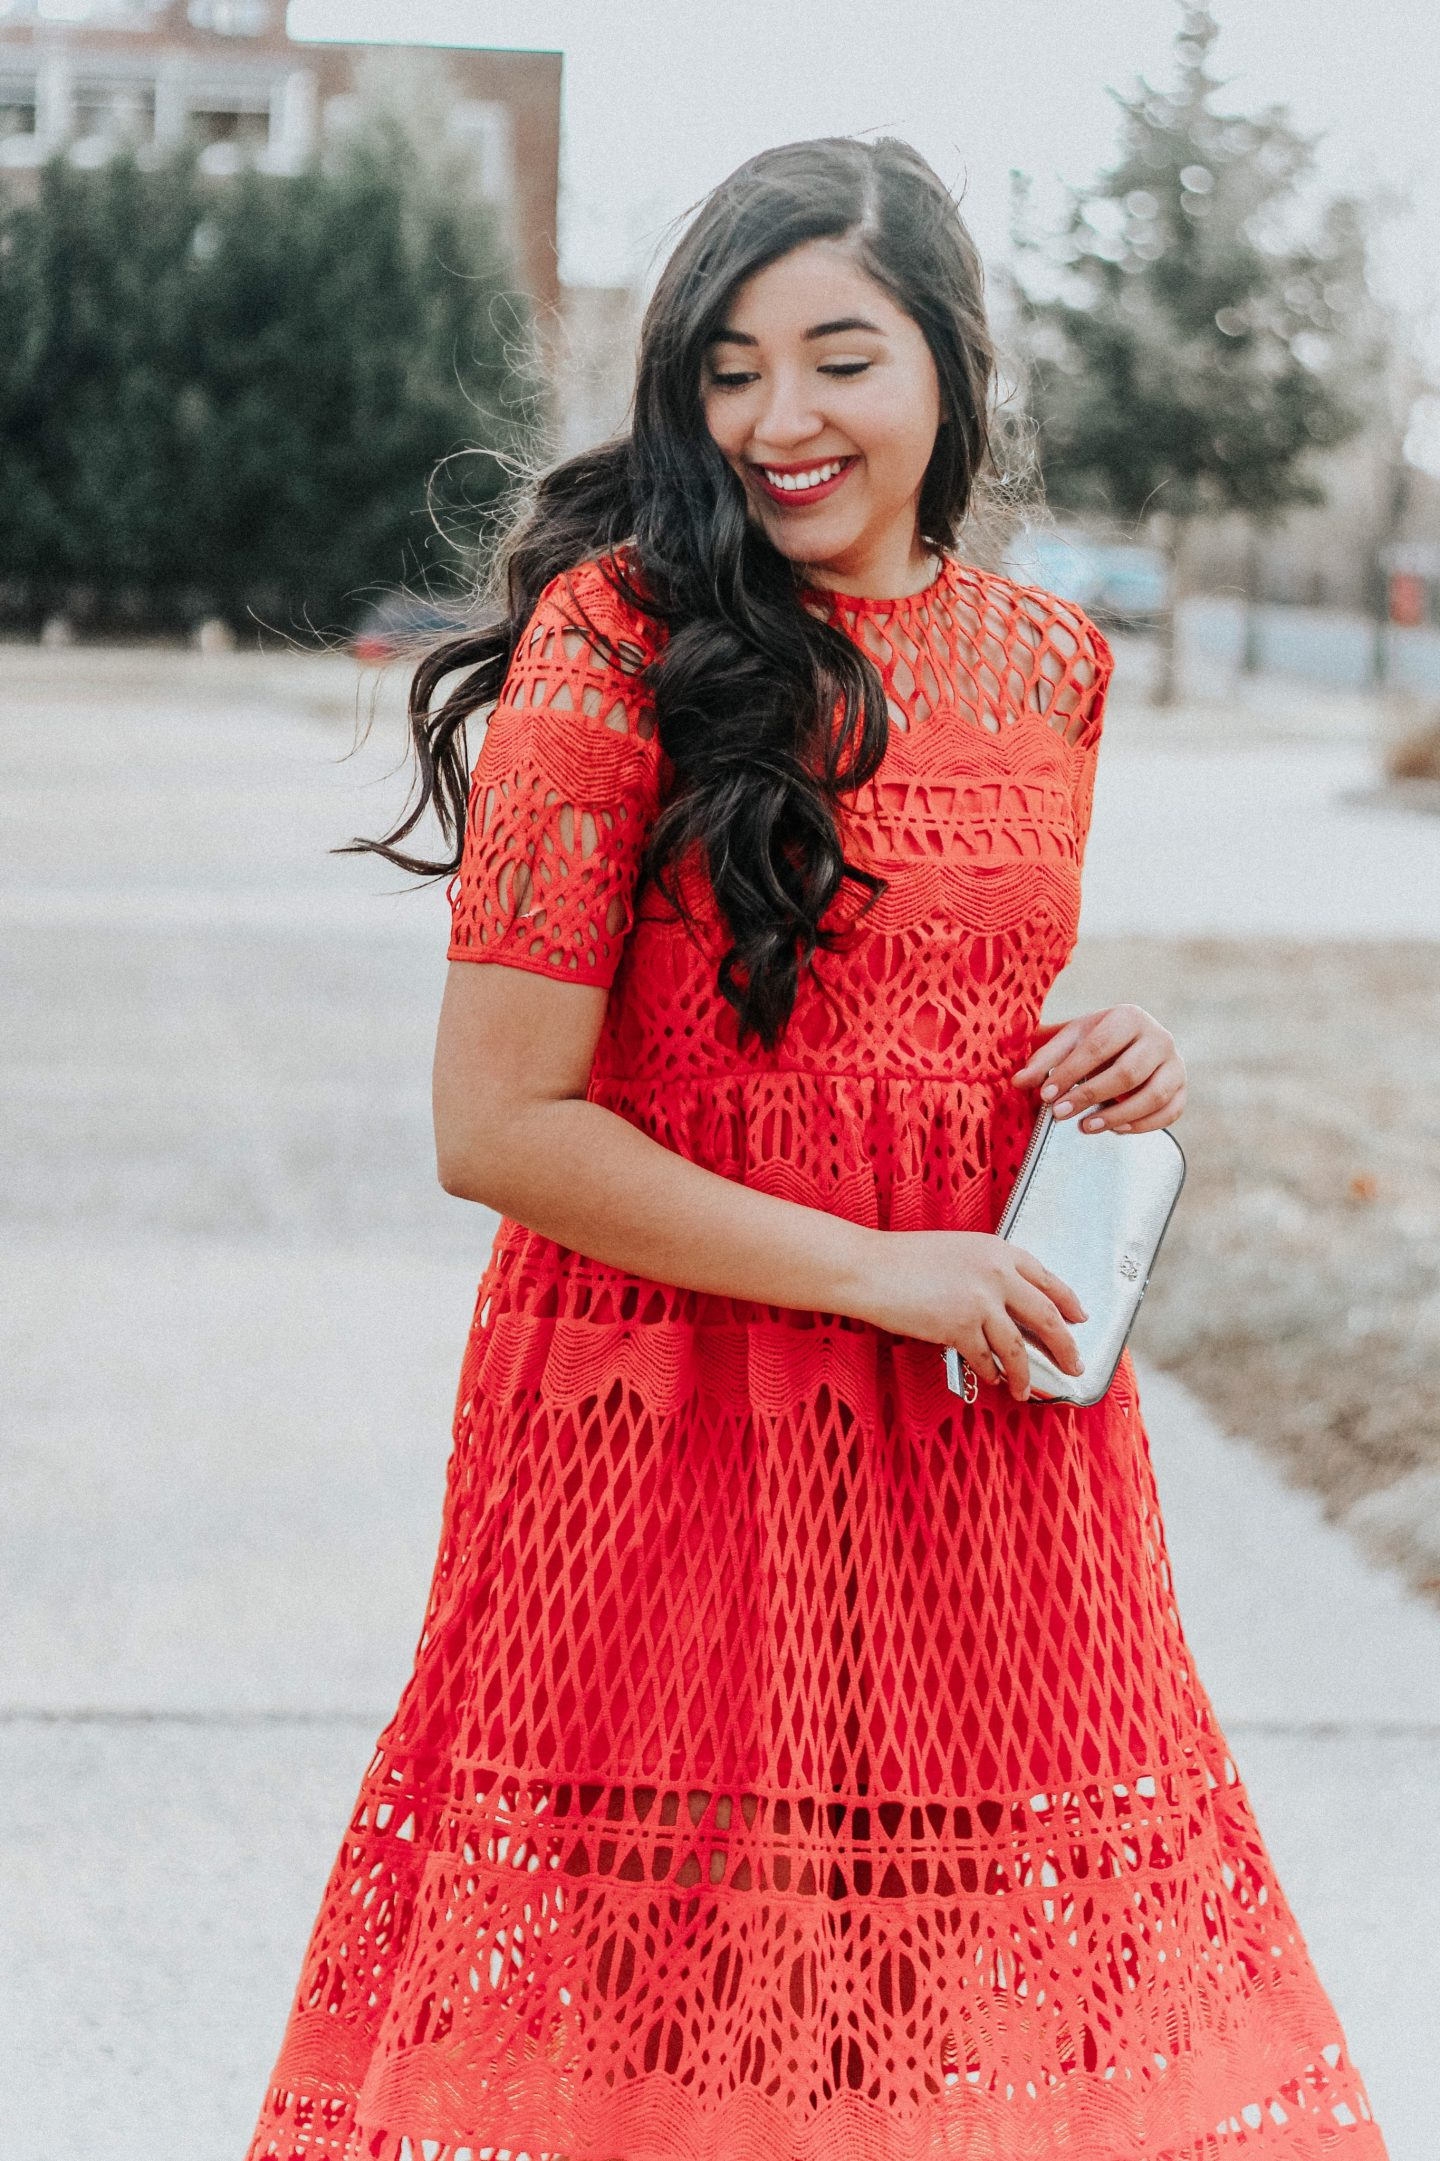 Valentines Day Outfit Ideas for Any Occasion | What to Wear